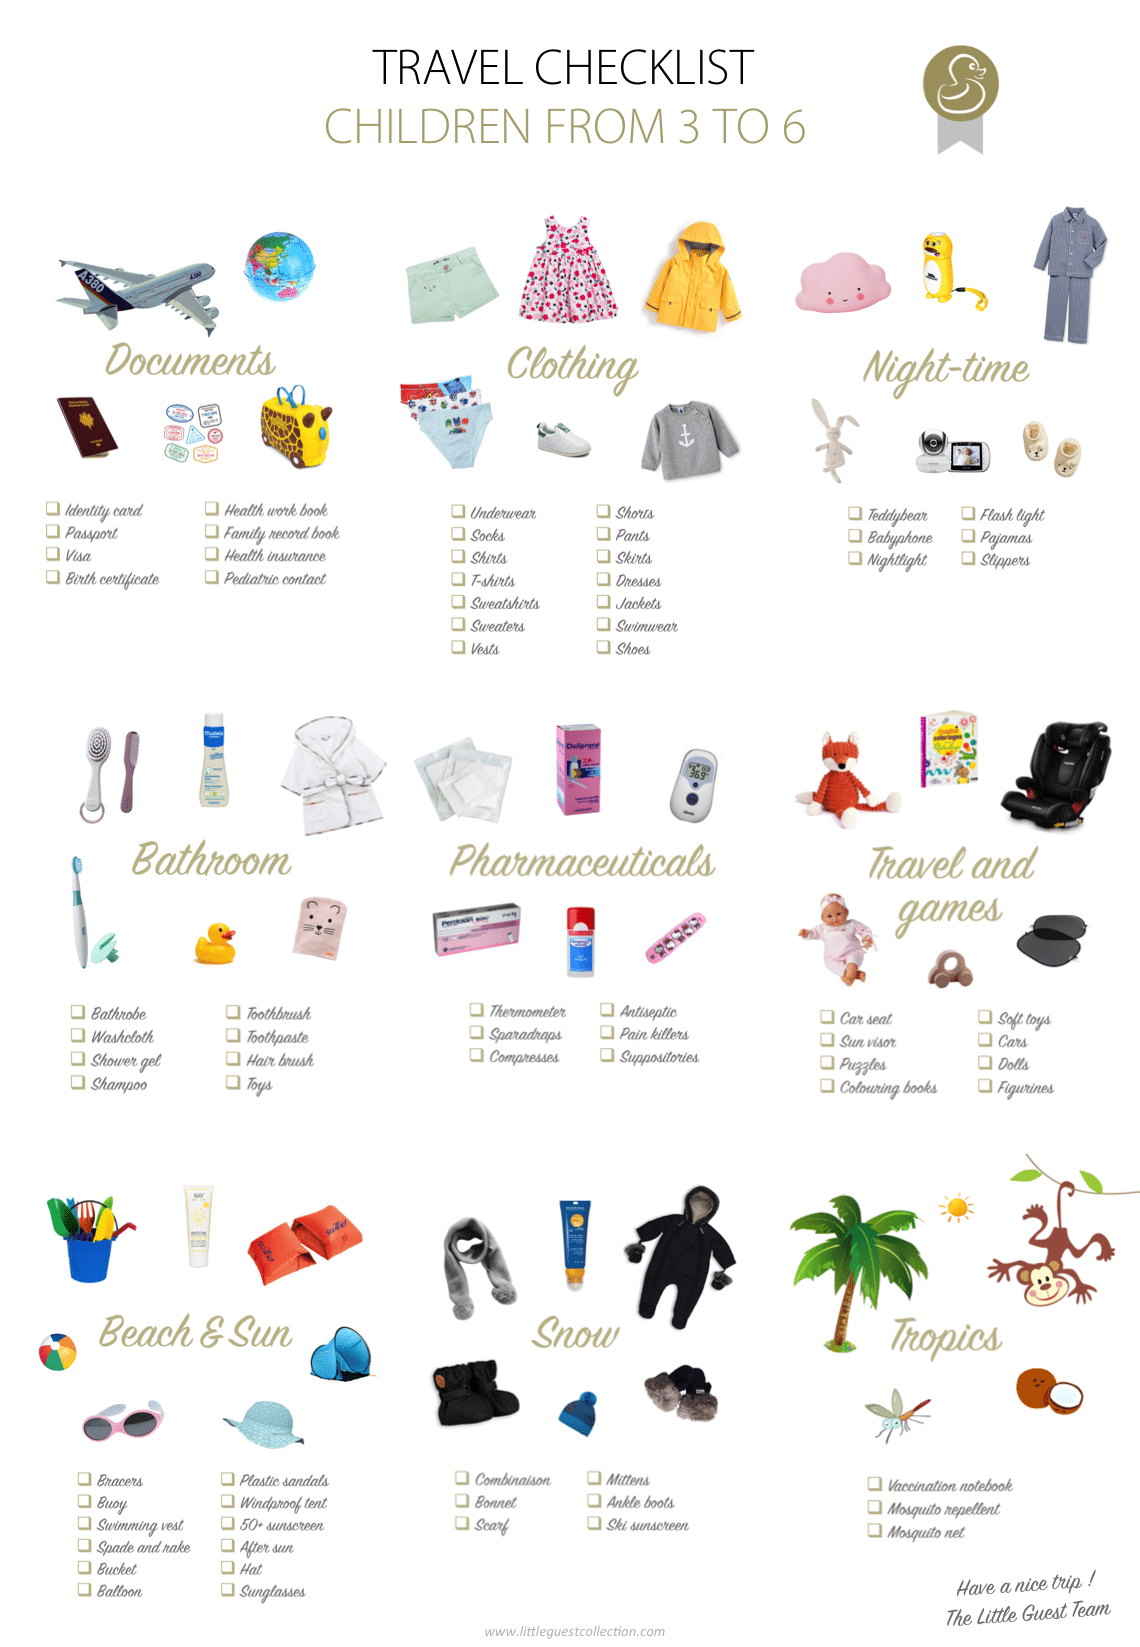 Travel checklist for children from 3 years, 4 years, 5 years and 6 years (documents, clothing, night-time, bathroom, meals, pharmaceuticals, travel, games, sun, beach, tropics et snow)